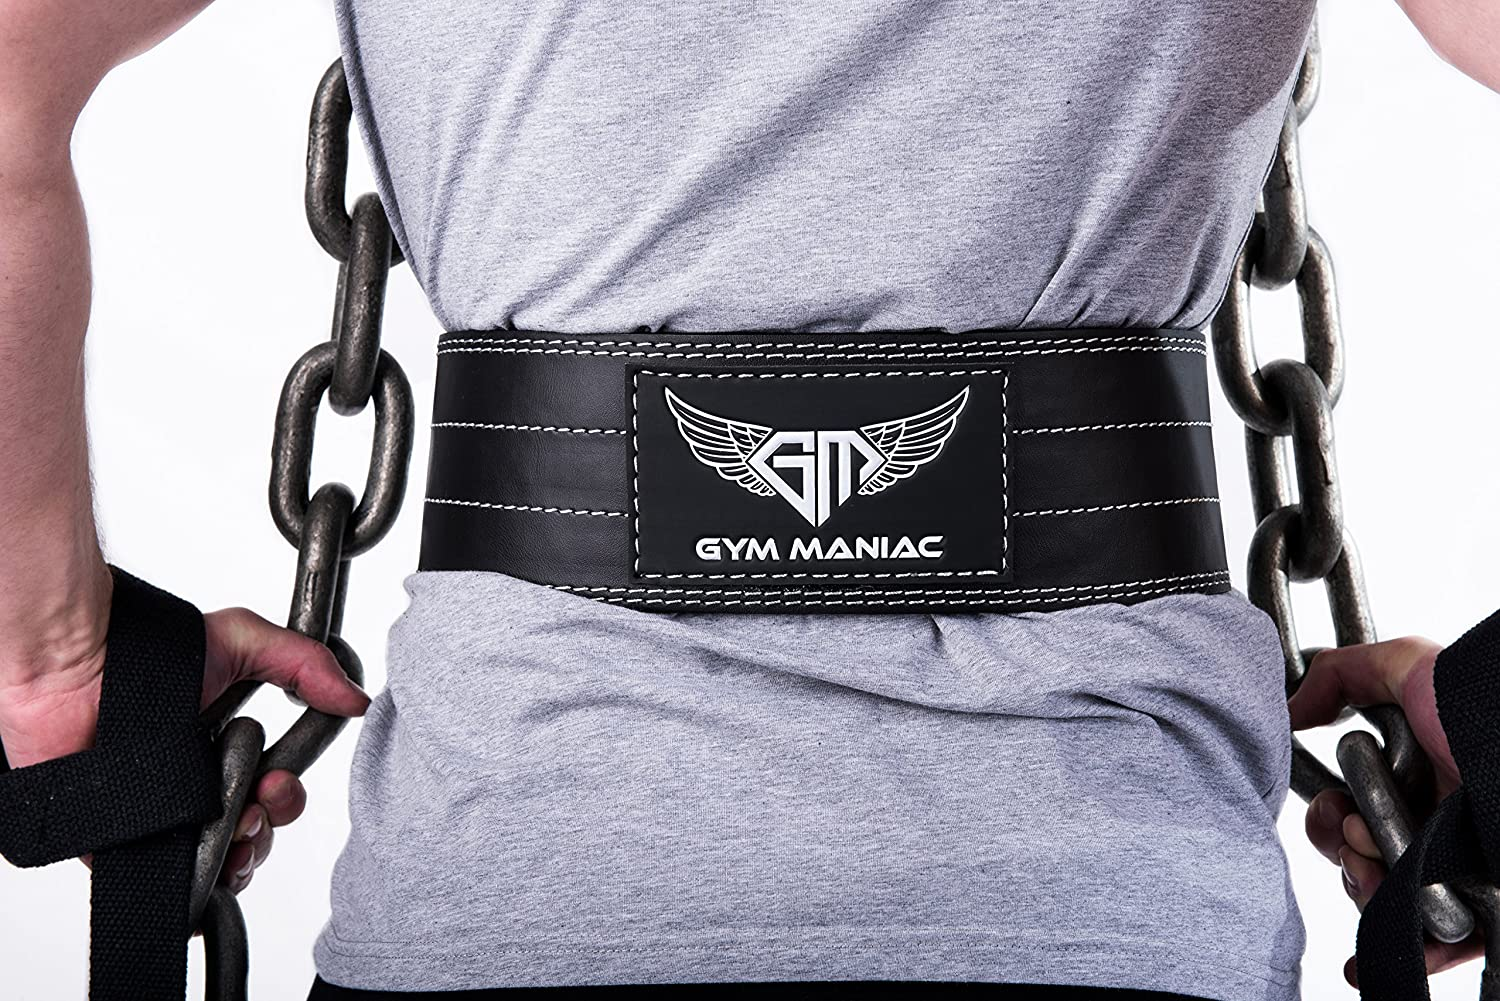 Gym Maniac Leather Gym Weight Lifting Belt with Wrist Straps Compact, Adjustable, Comfy Fitness Belt Improve Back Support Stability for Powerlifting, Crossfit, Squats